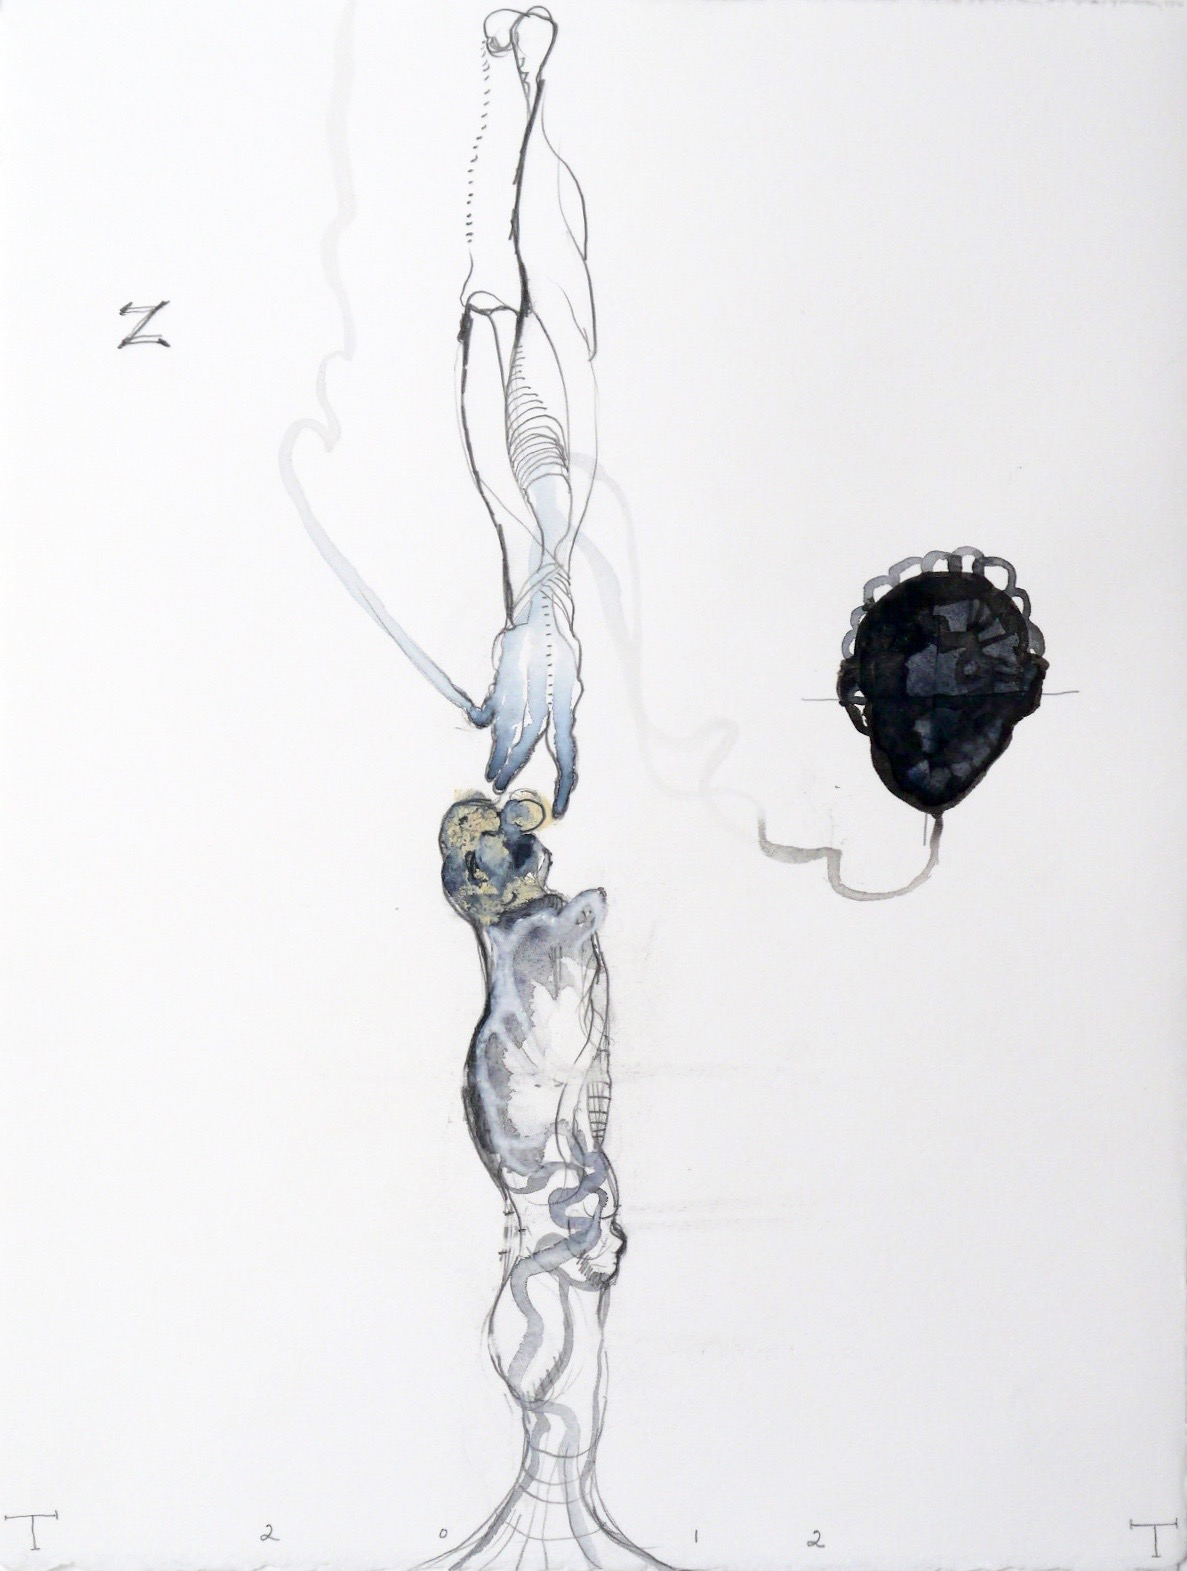 Vesalius series, mixed media on paper, 33 X 25 cm, 2012